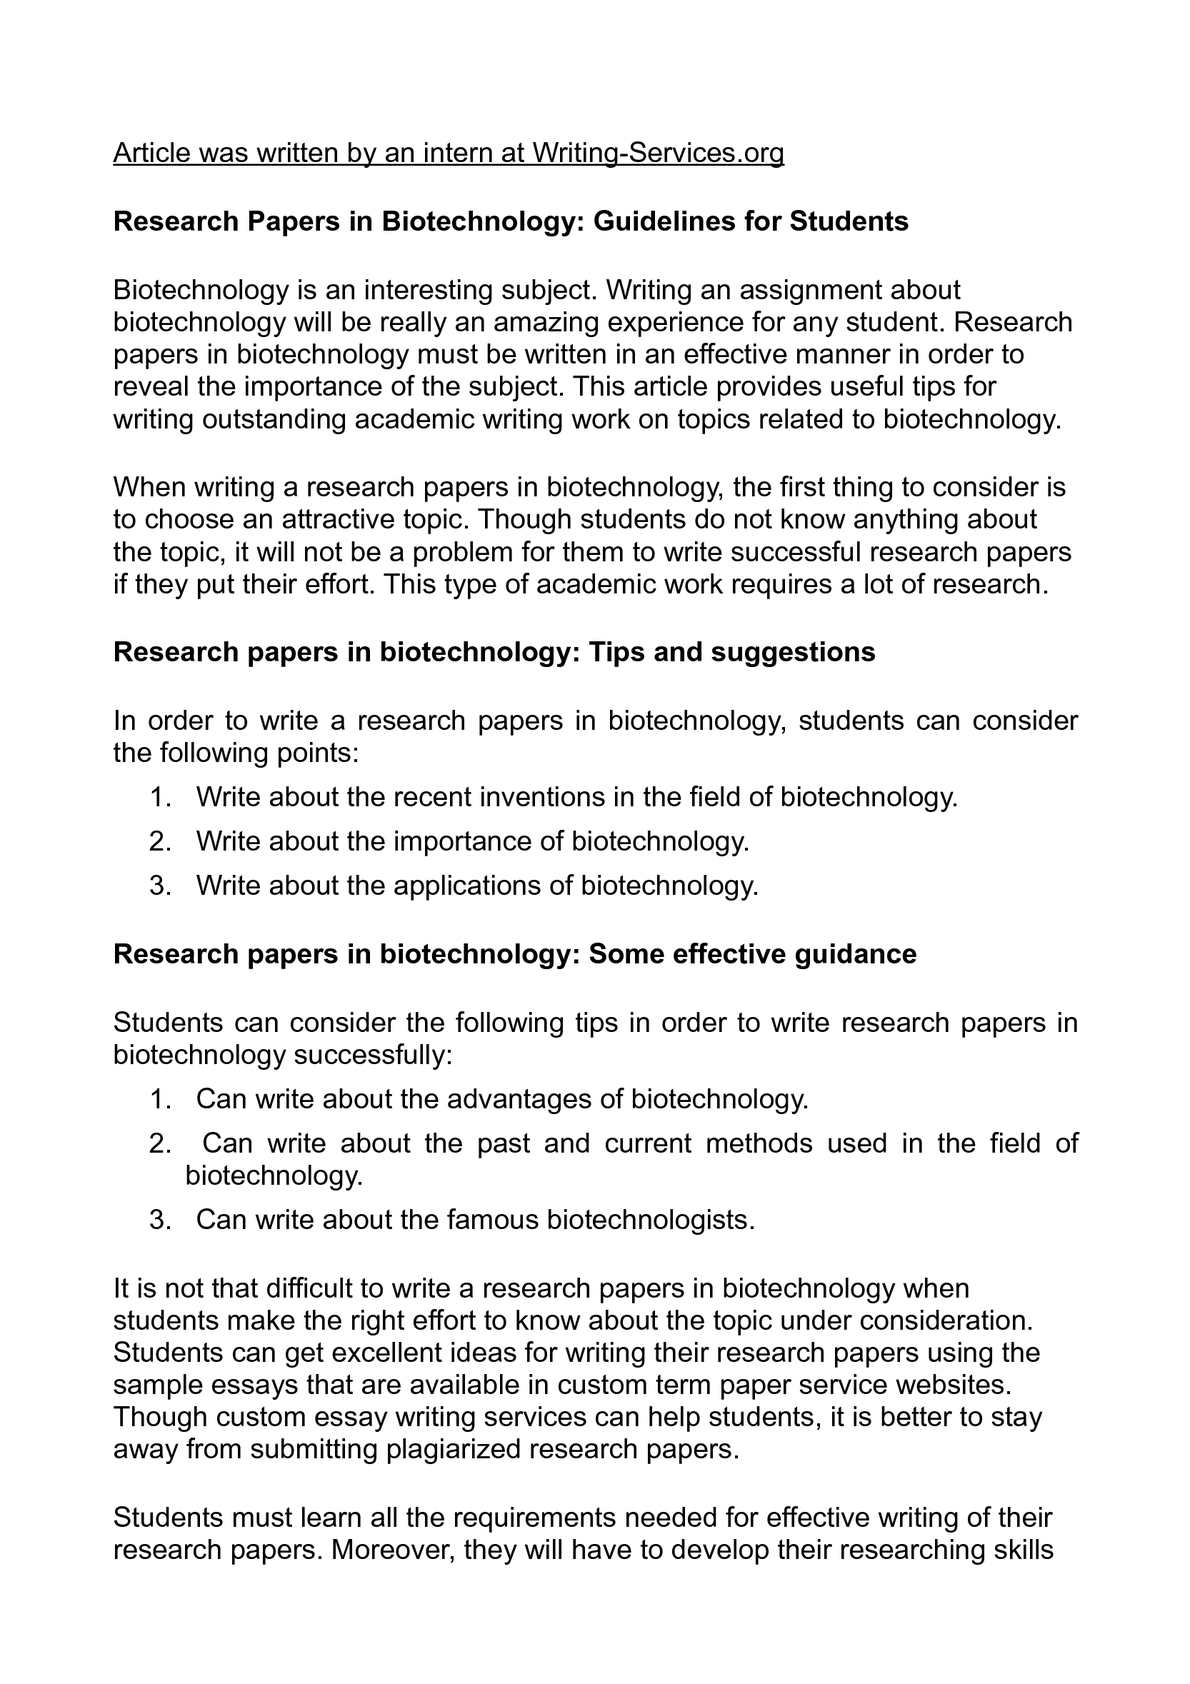 argumentitive research papers